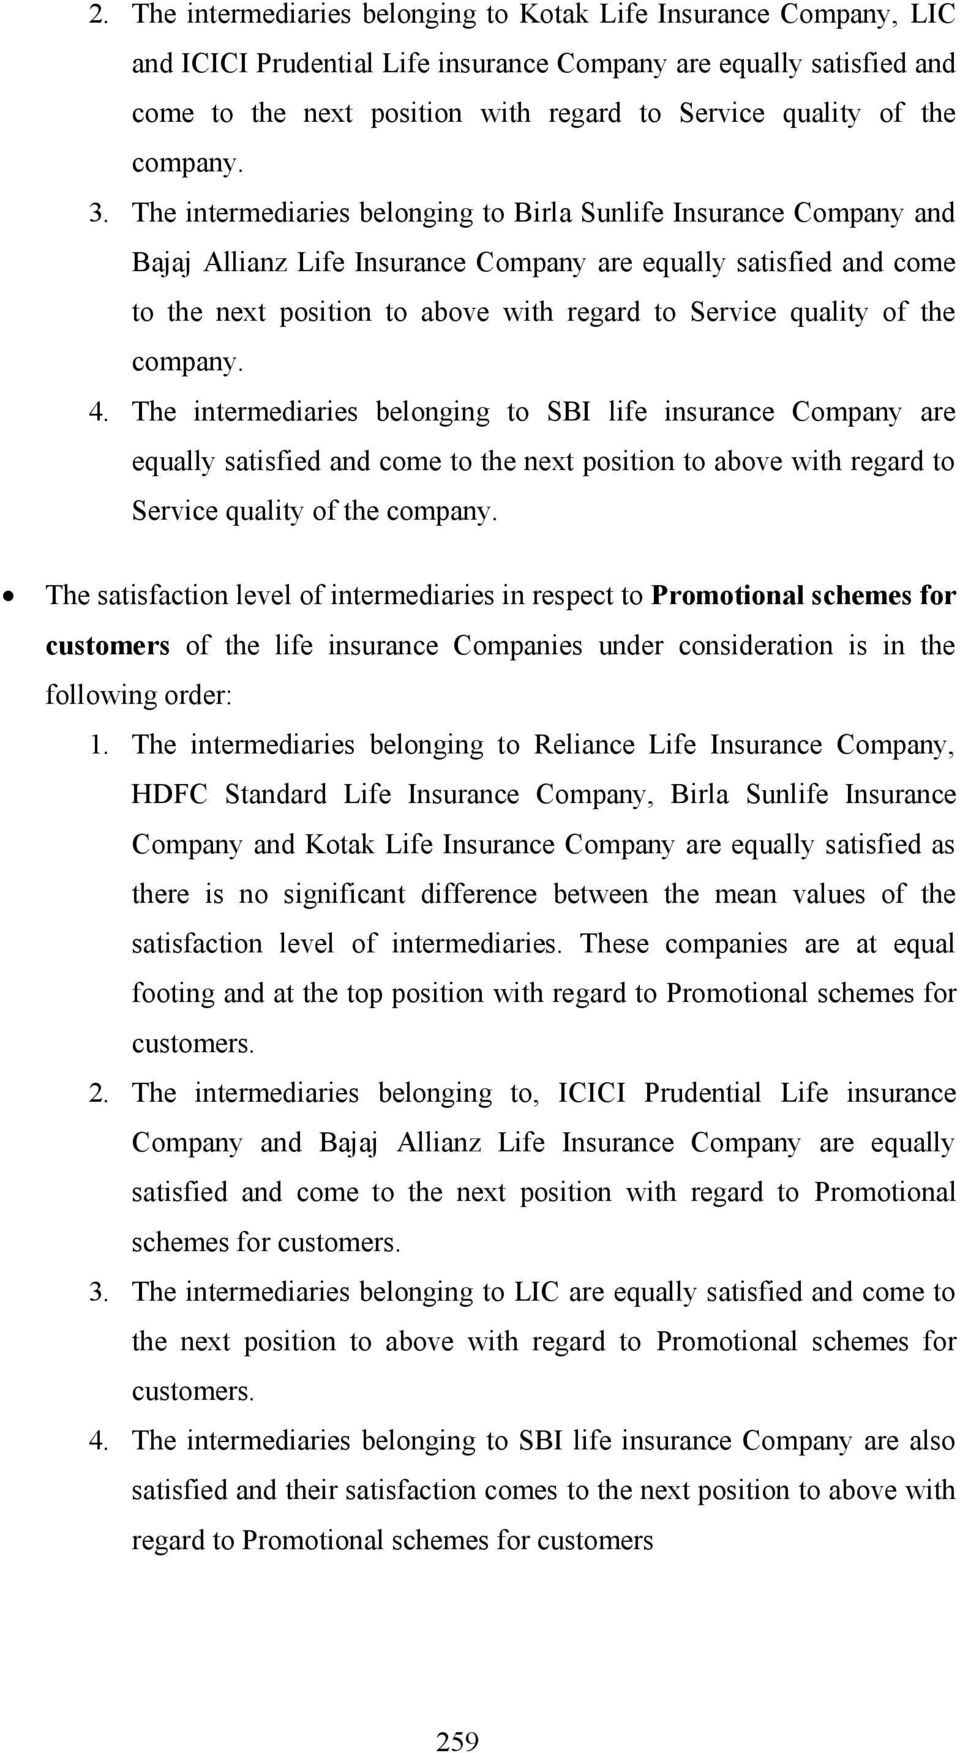 The intermediaries belonging to Birla Sunlife Insurance Company and Bajaj Allianz Life Insurance Company are equally satisfied and come to the next position to above with regard to Service quality of